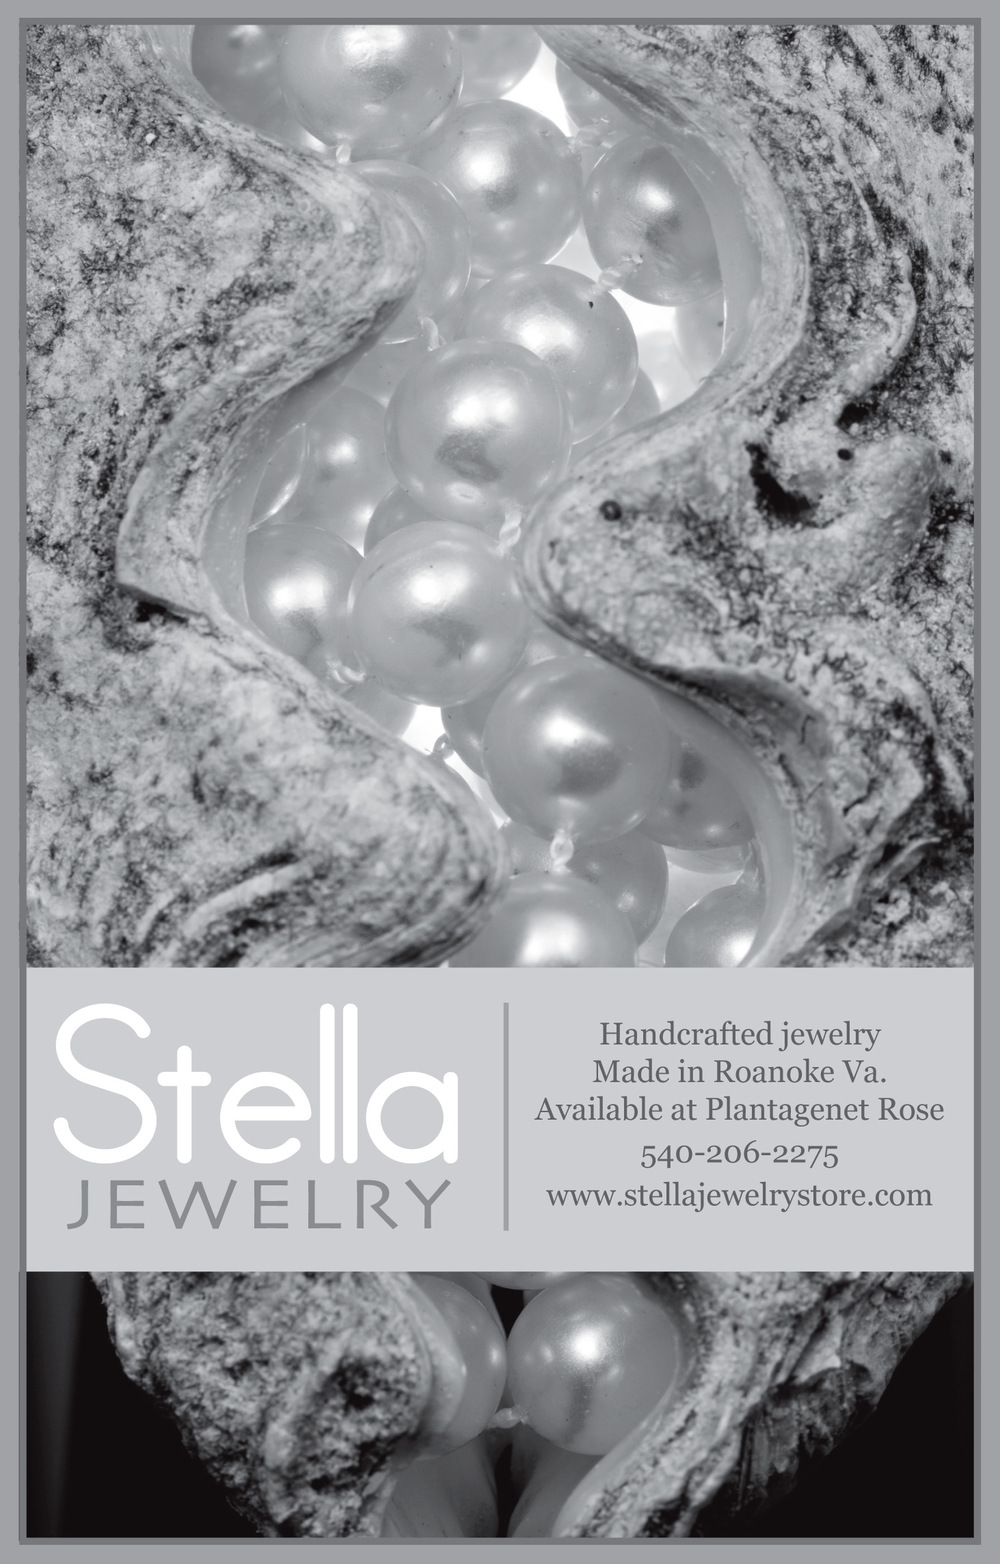 Stella-Star-Newsletter-ad-April-2011.jpg